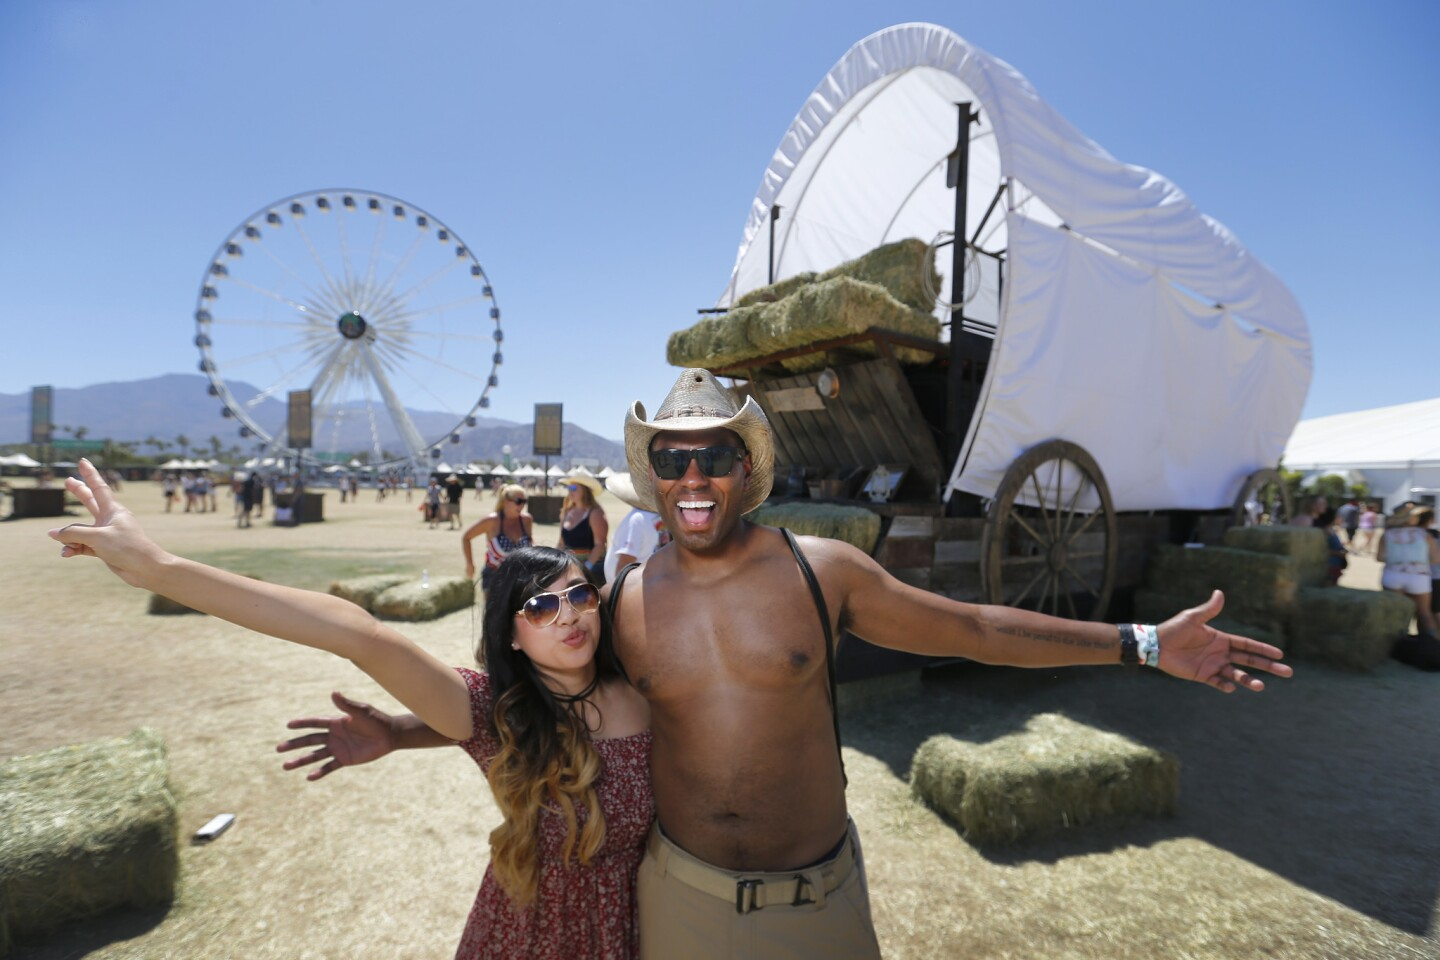 Jenn Nguyen and Amahl Harris, both of Santa Barbara, pose in front of a giant covered wagon and La Grande XL Ferris wheel on the third day of the Stagecoach country music festival at the Empire Polo Fields in Indio, Calif., on April 30, 2017.